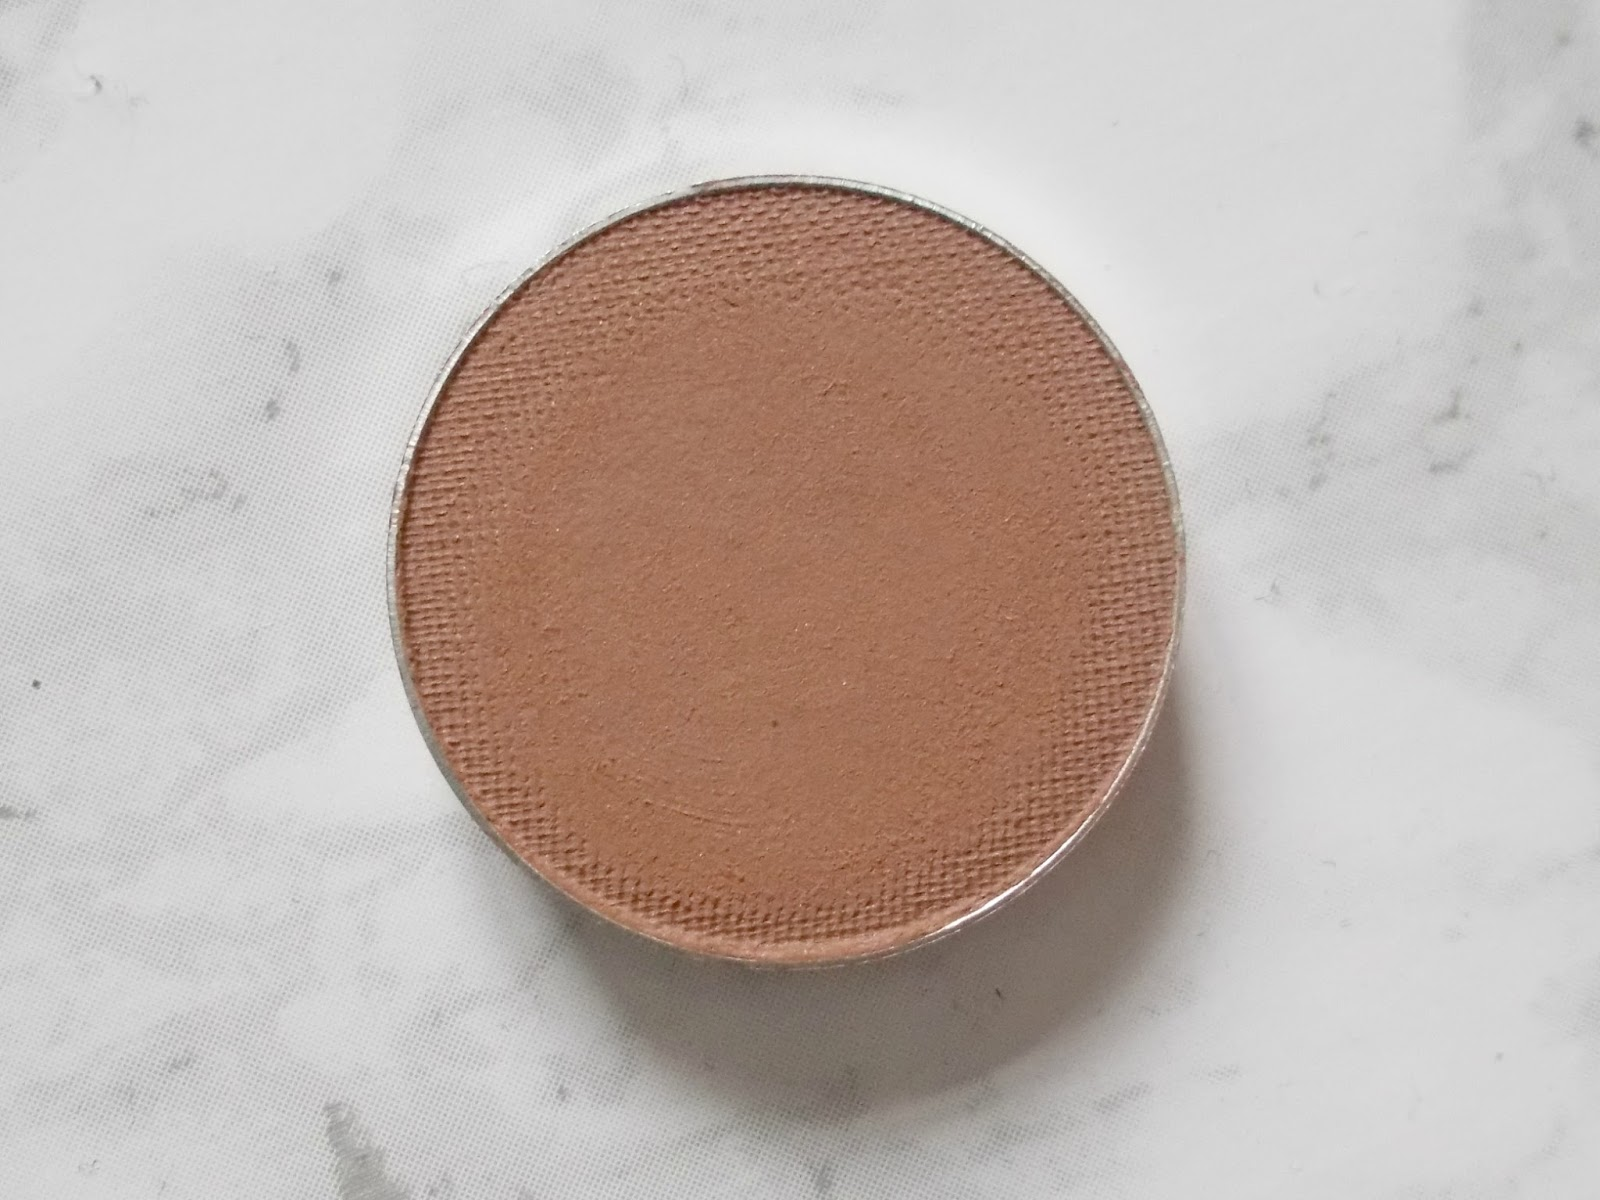 makeup geek latte eyeshadow pan